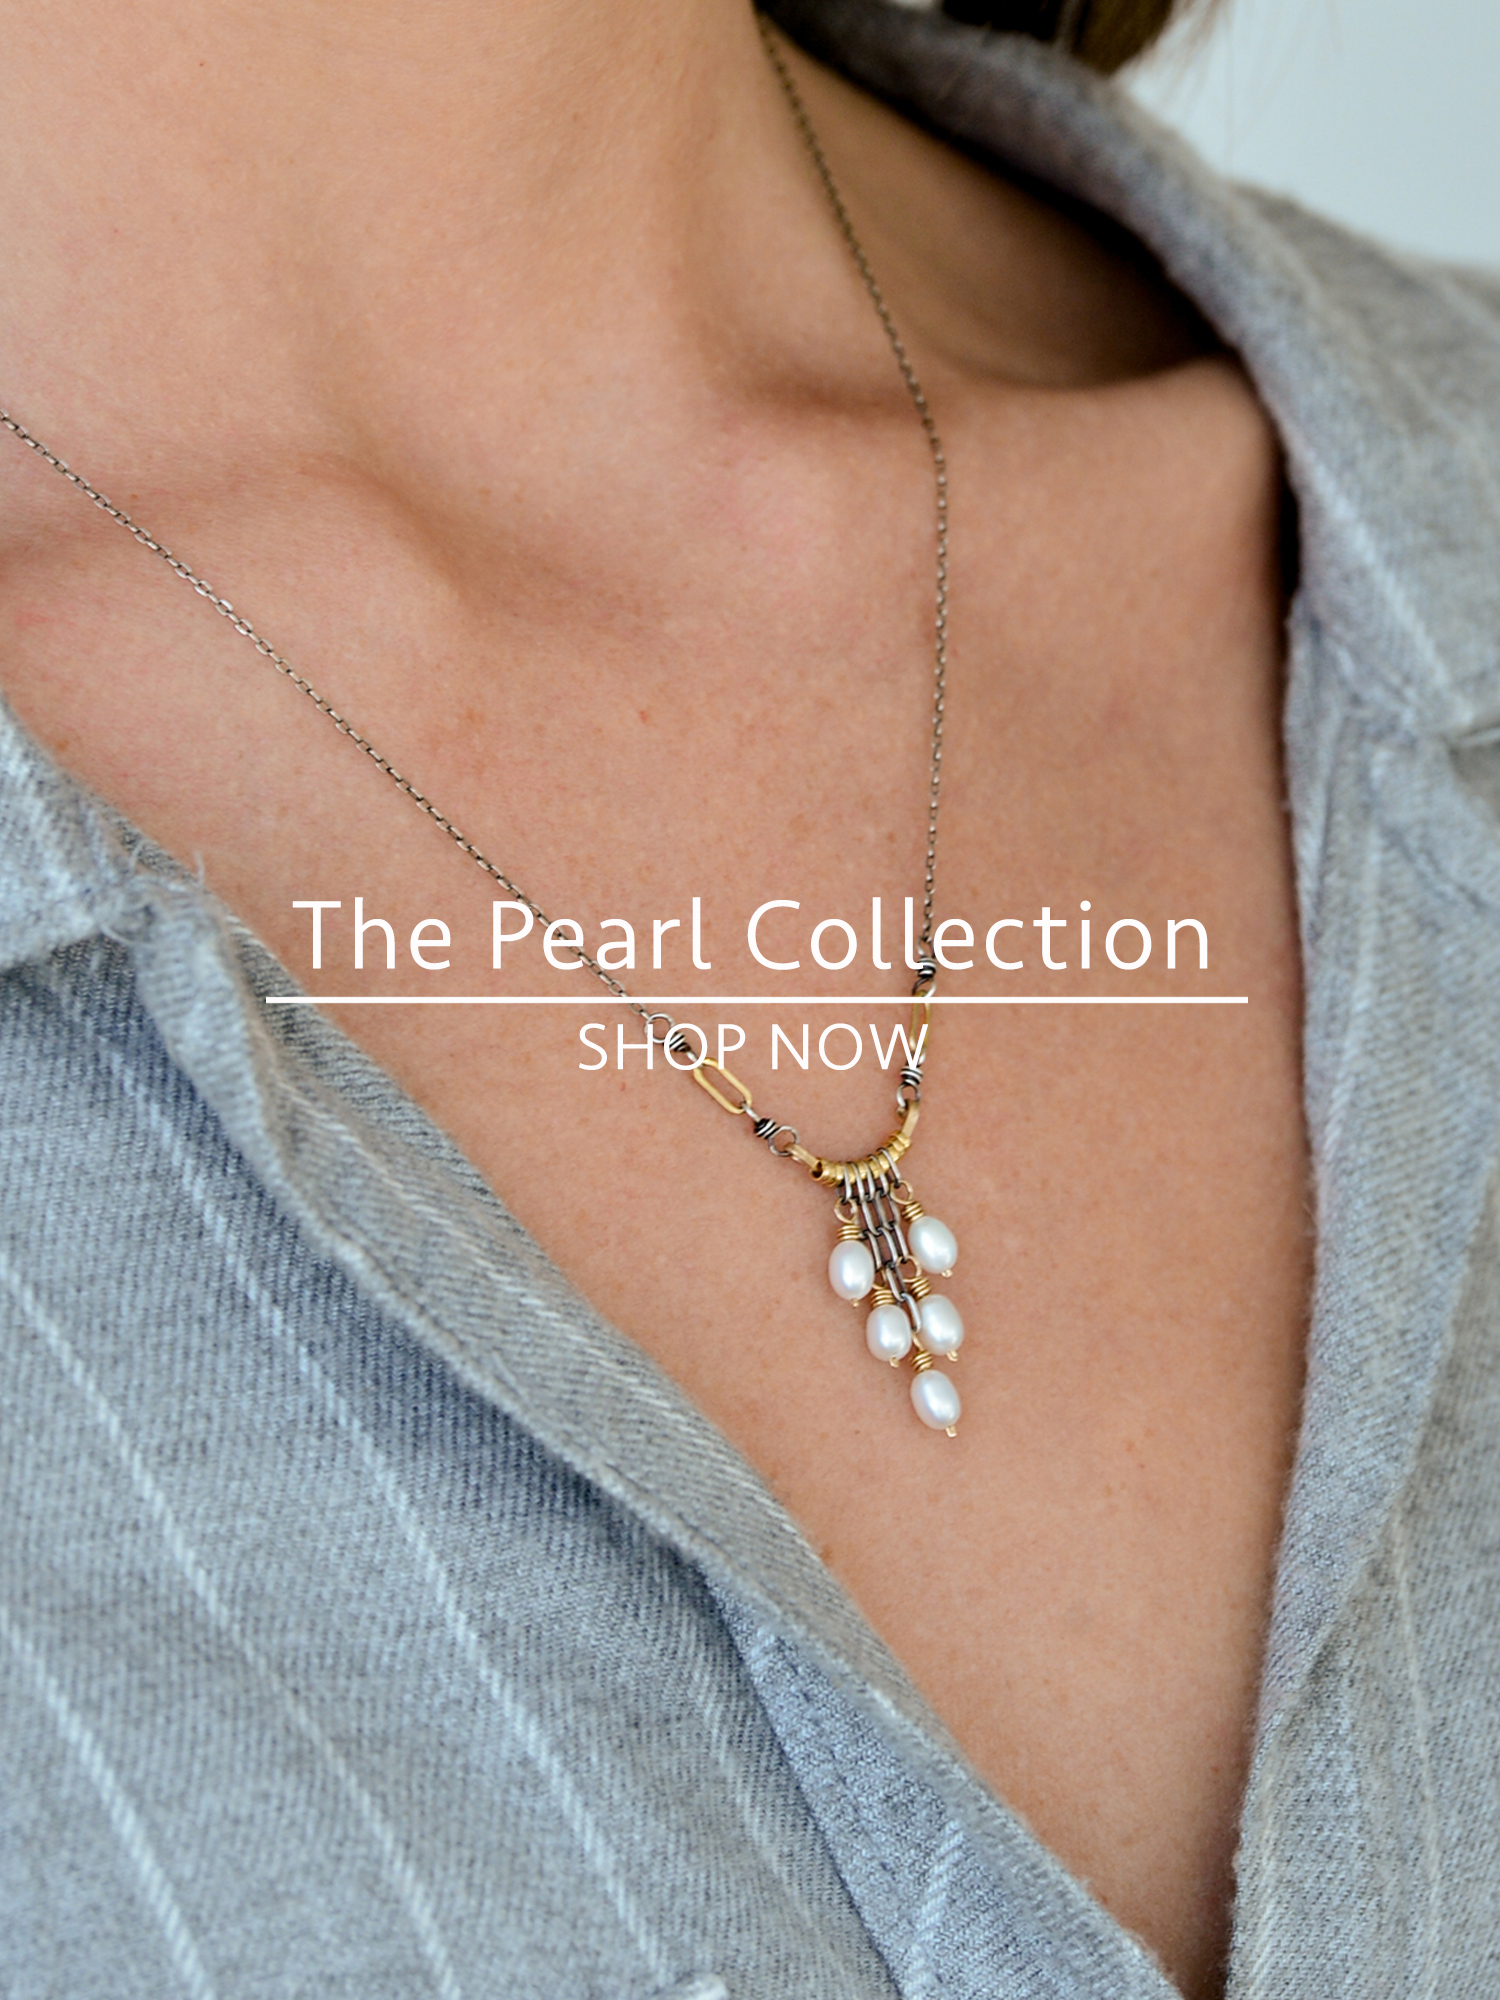 thepearlcollection.jpg